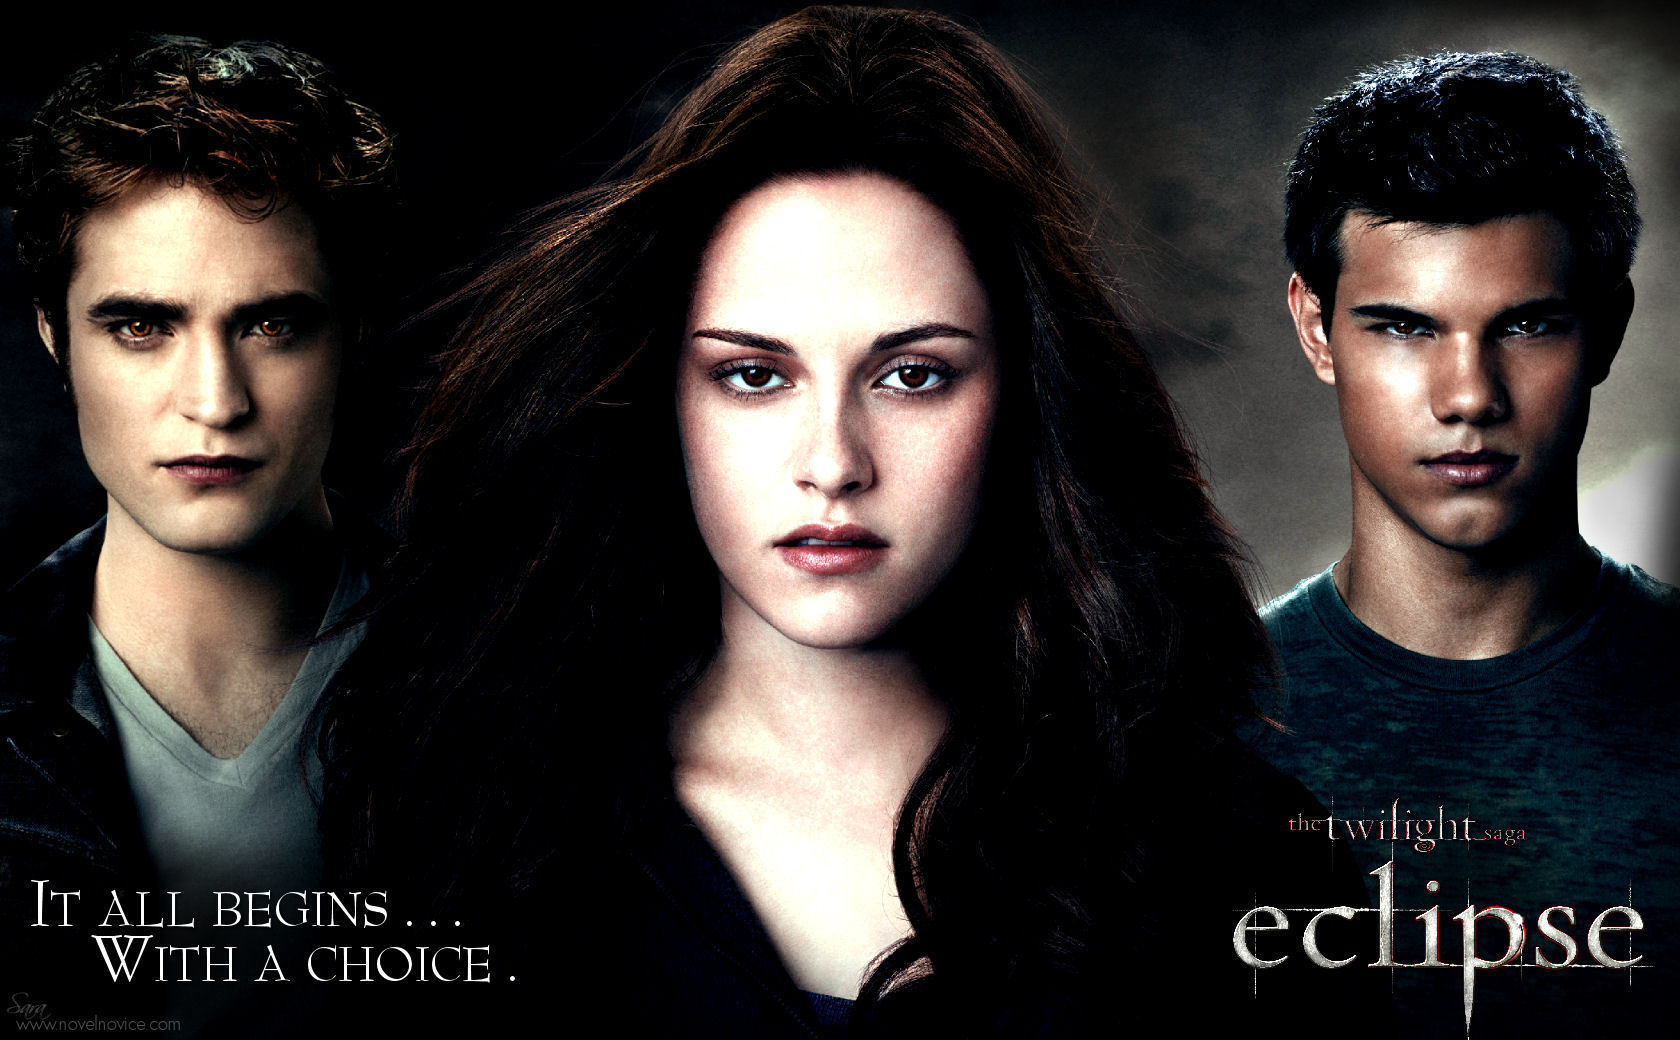 The Twilight Saga: Eclipse Wallpapers,Photos,Pictures ...